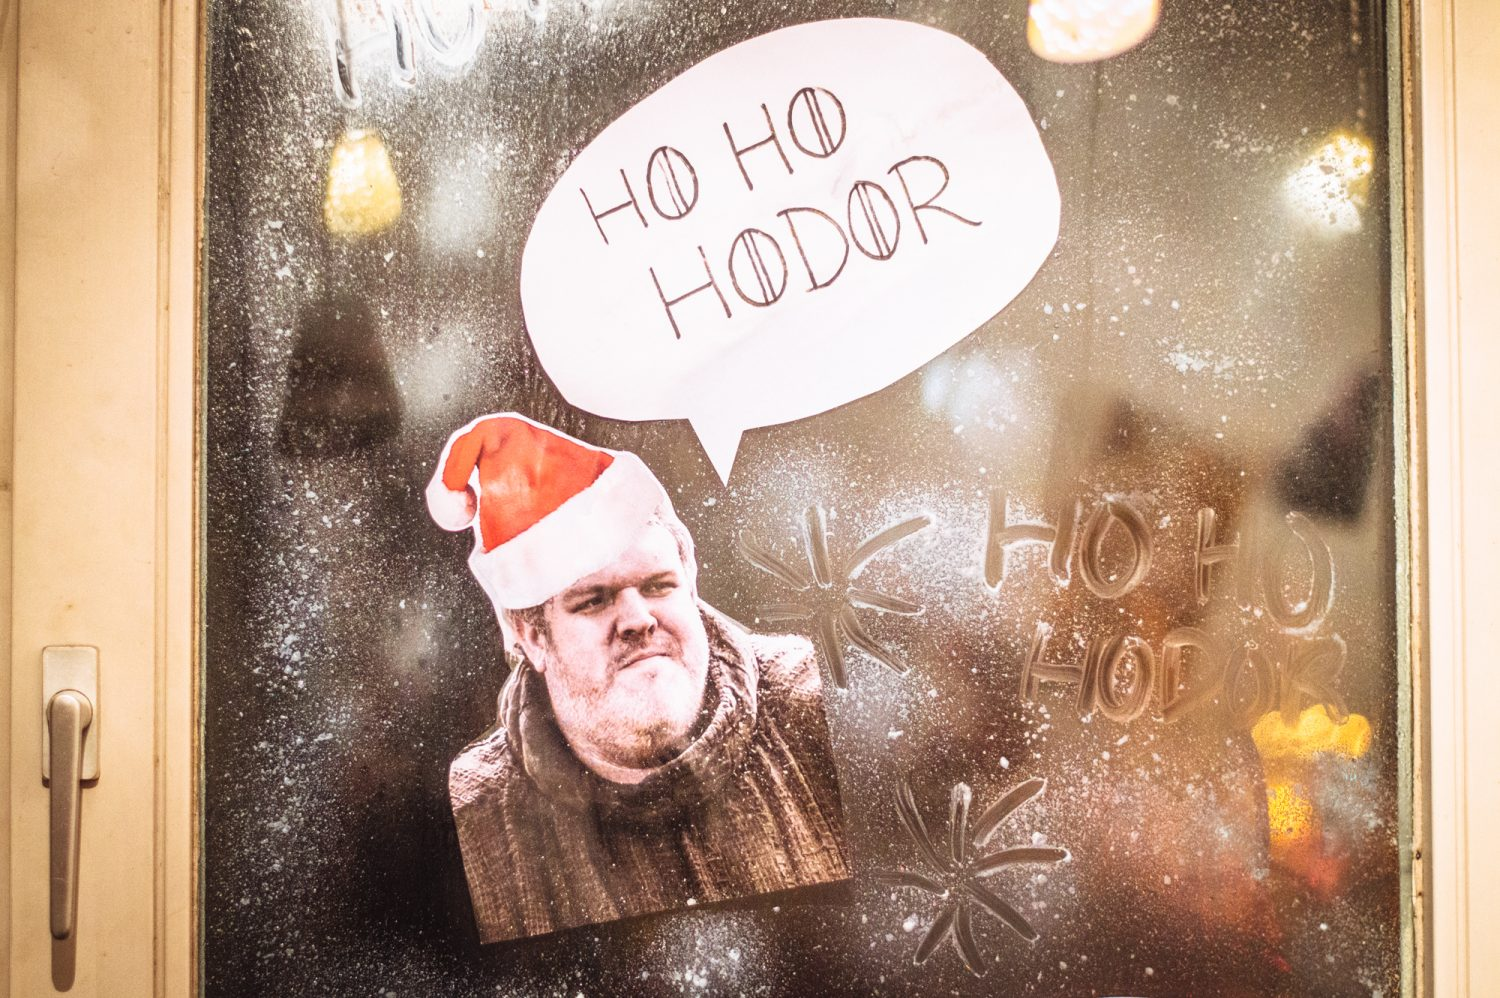 Game of Thrones Christmas inspiration! Click through to see awesome Game of Thrones Christmas decor filled with puns. #GameOfThrones #Puns #Christmas